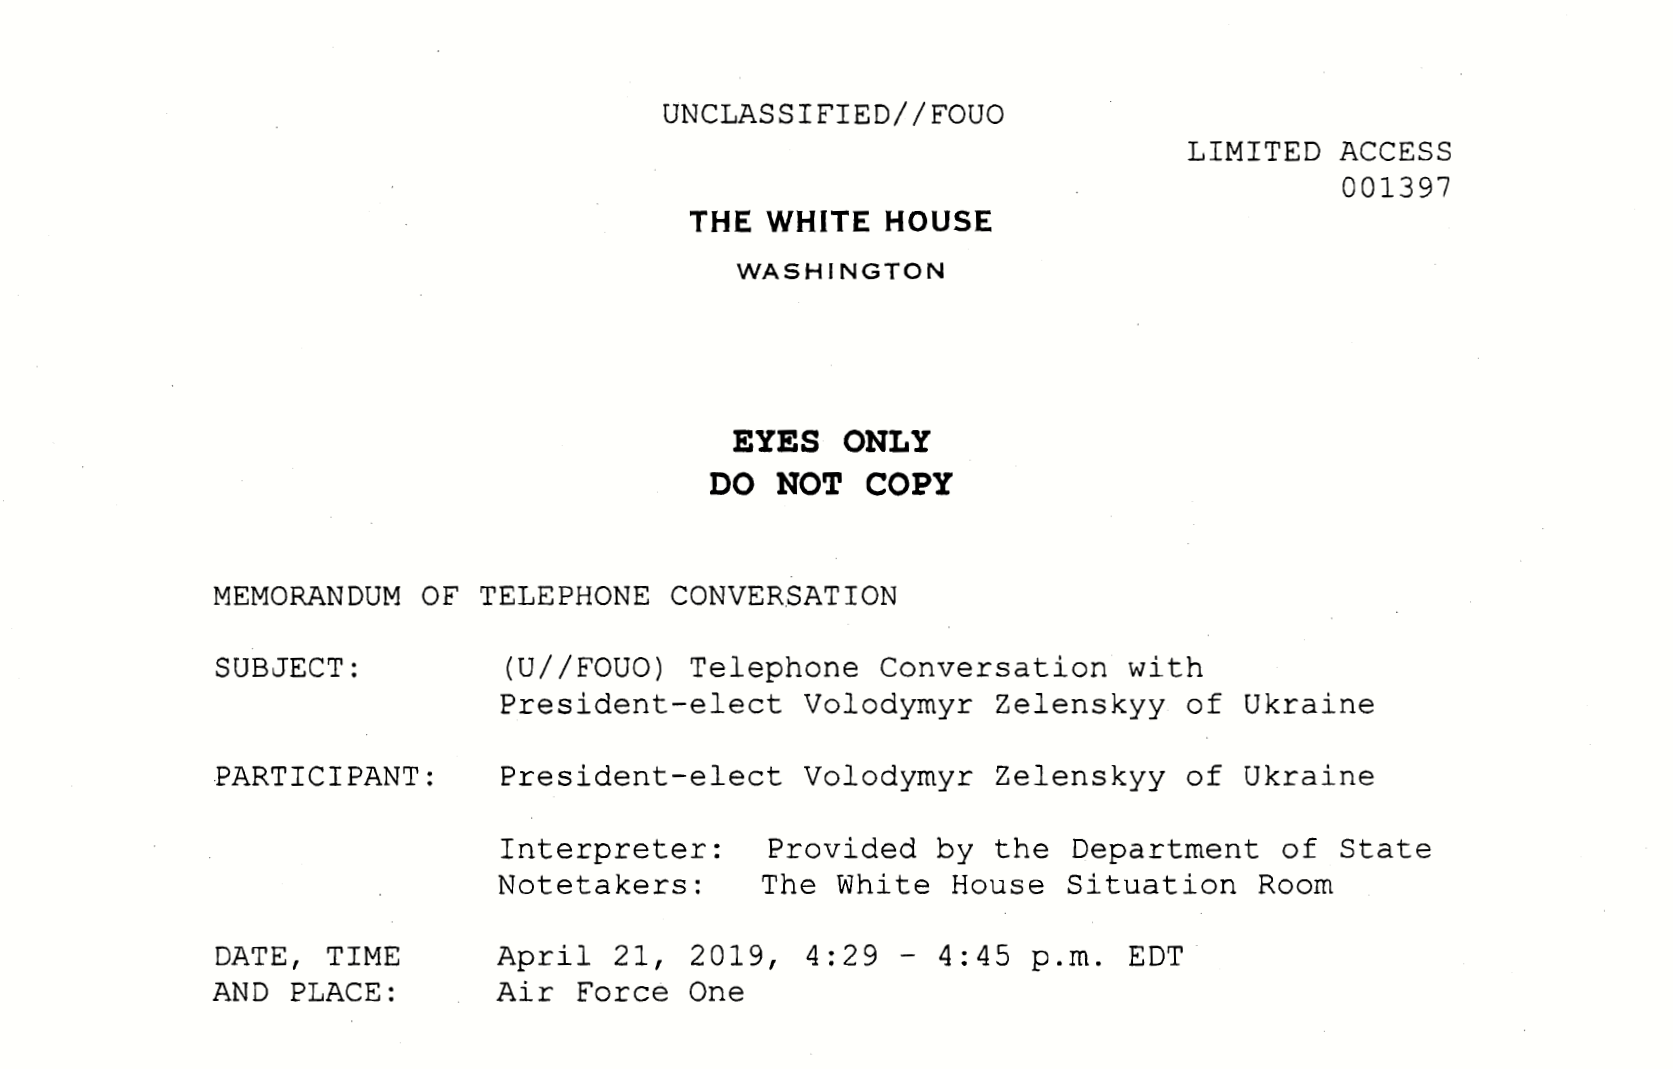 White House releases rough transcript of early Trump call to Ukraine president minutes before impeachment hearing   TheHill